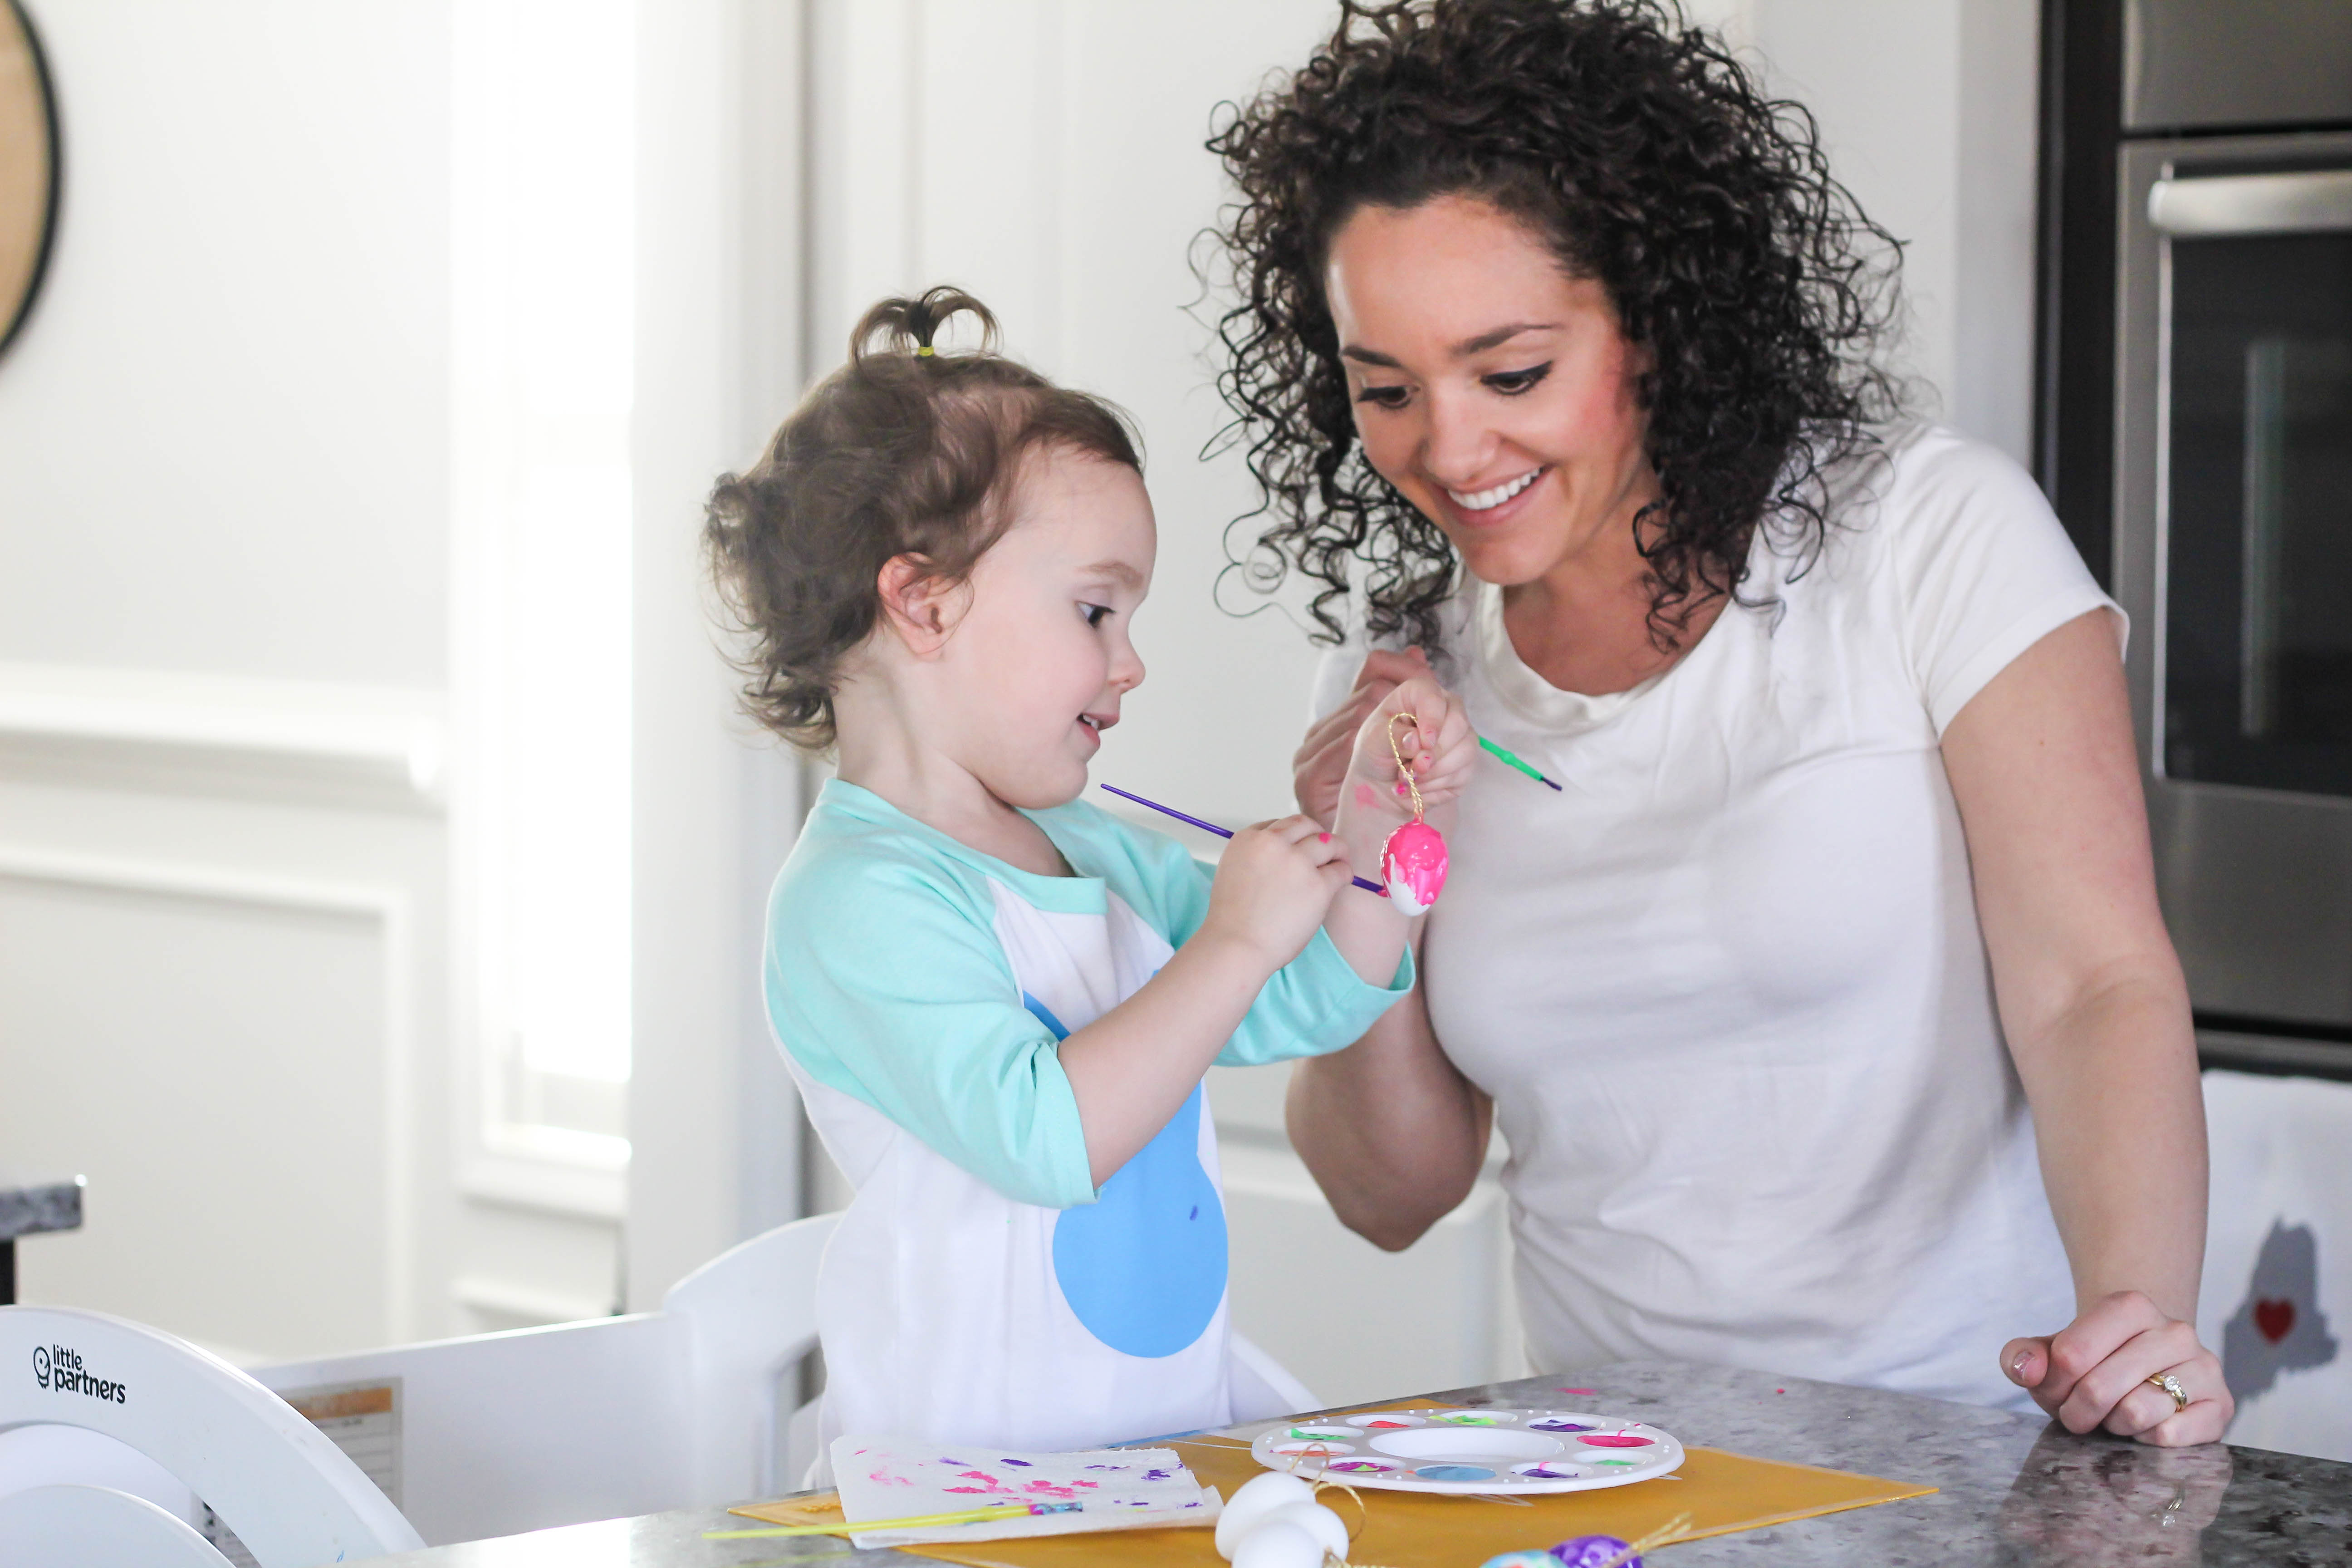 Surviving Messy Activities With Your Kids